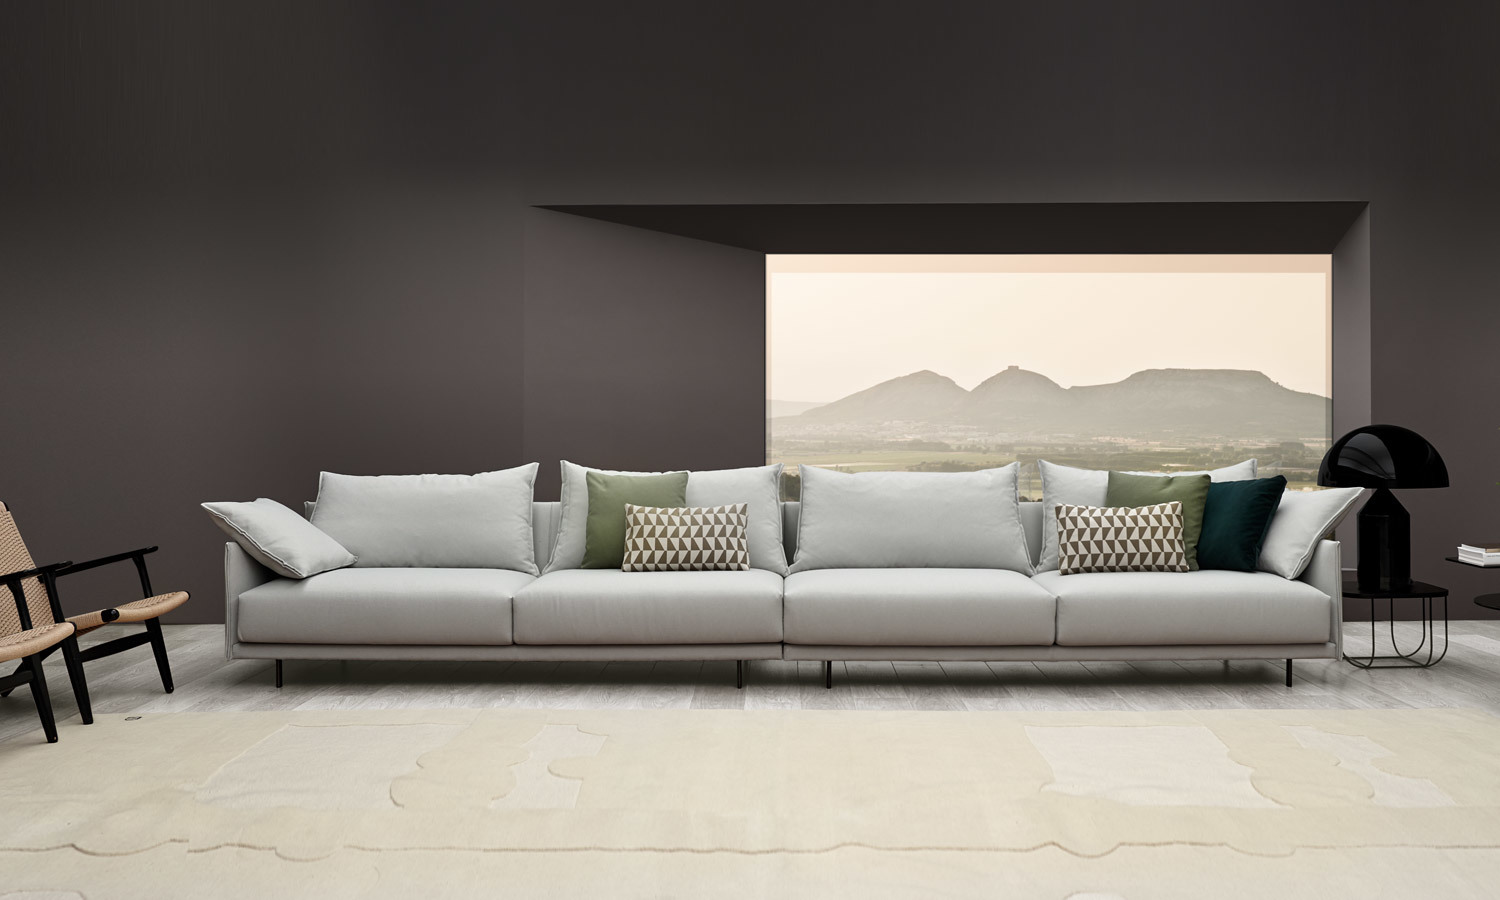 JOQUER Senso Sofa composition